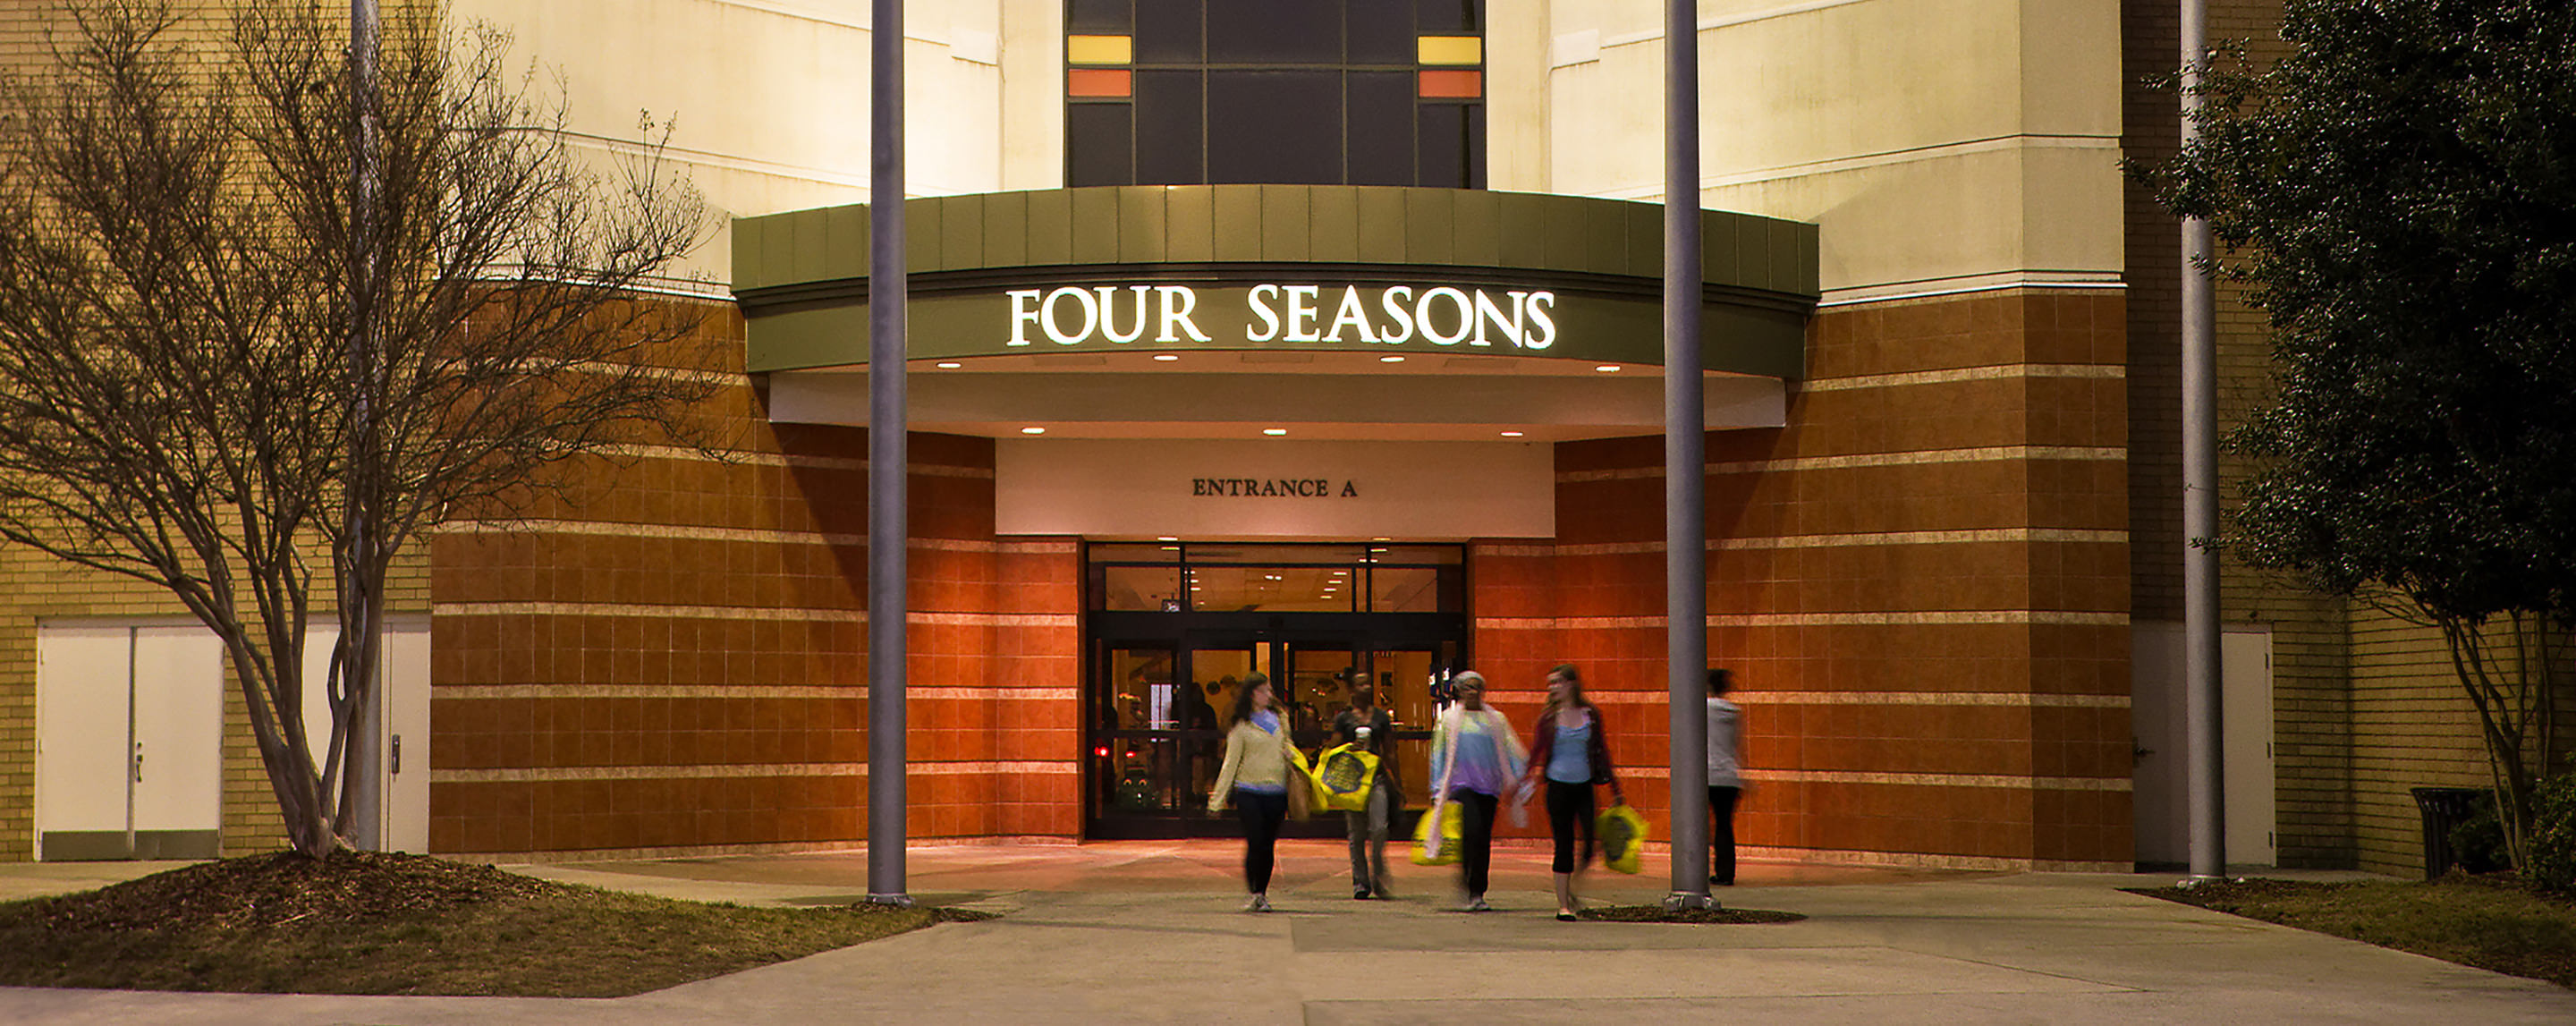 A group of shoppers exit the Four Season Town Center holding shopping bags at night as the property sign is lit up.